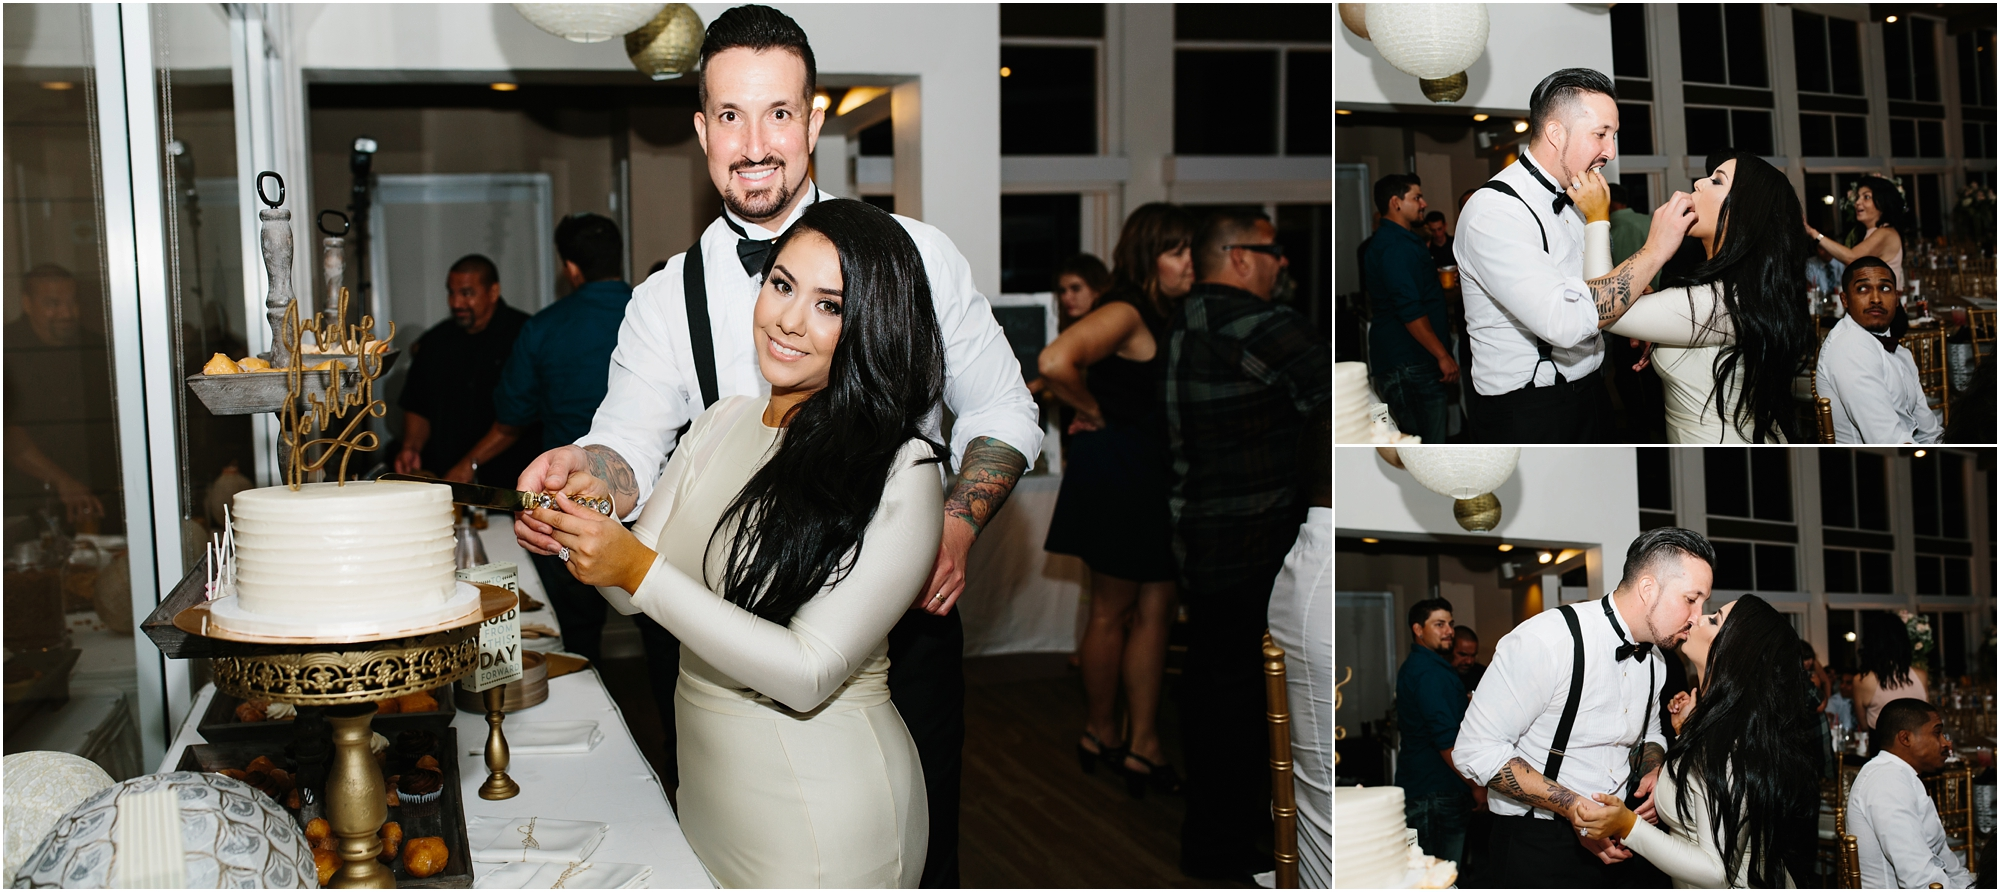 Cake Cutting - http://brittneyhannonphotography.com